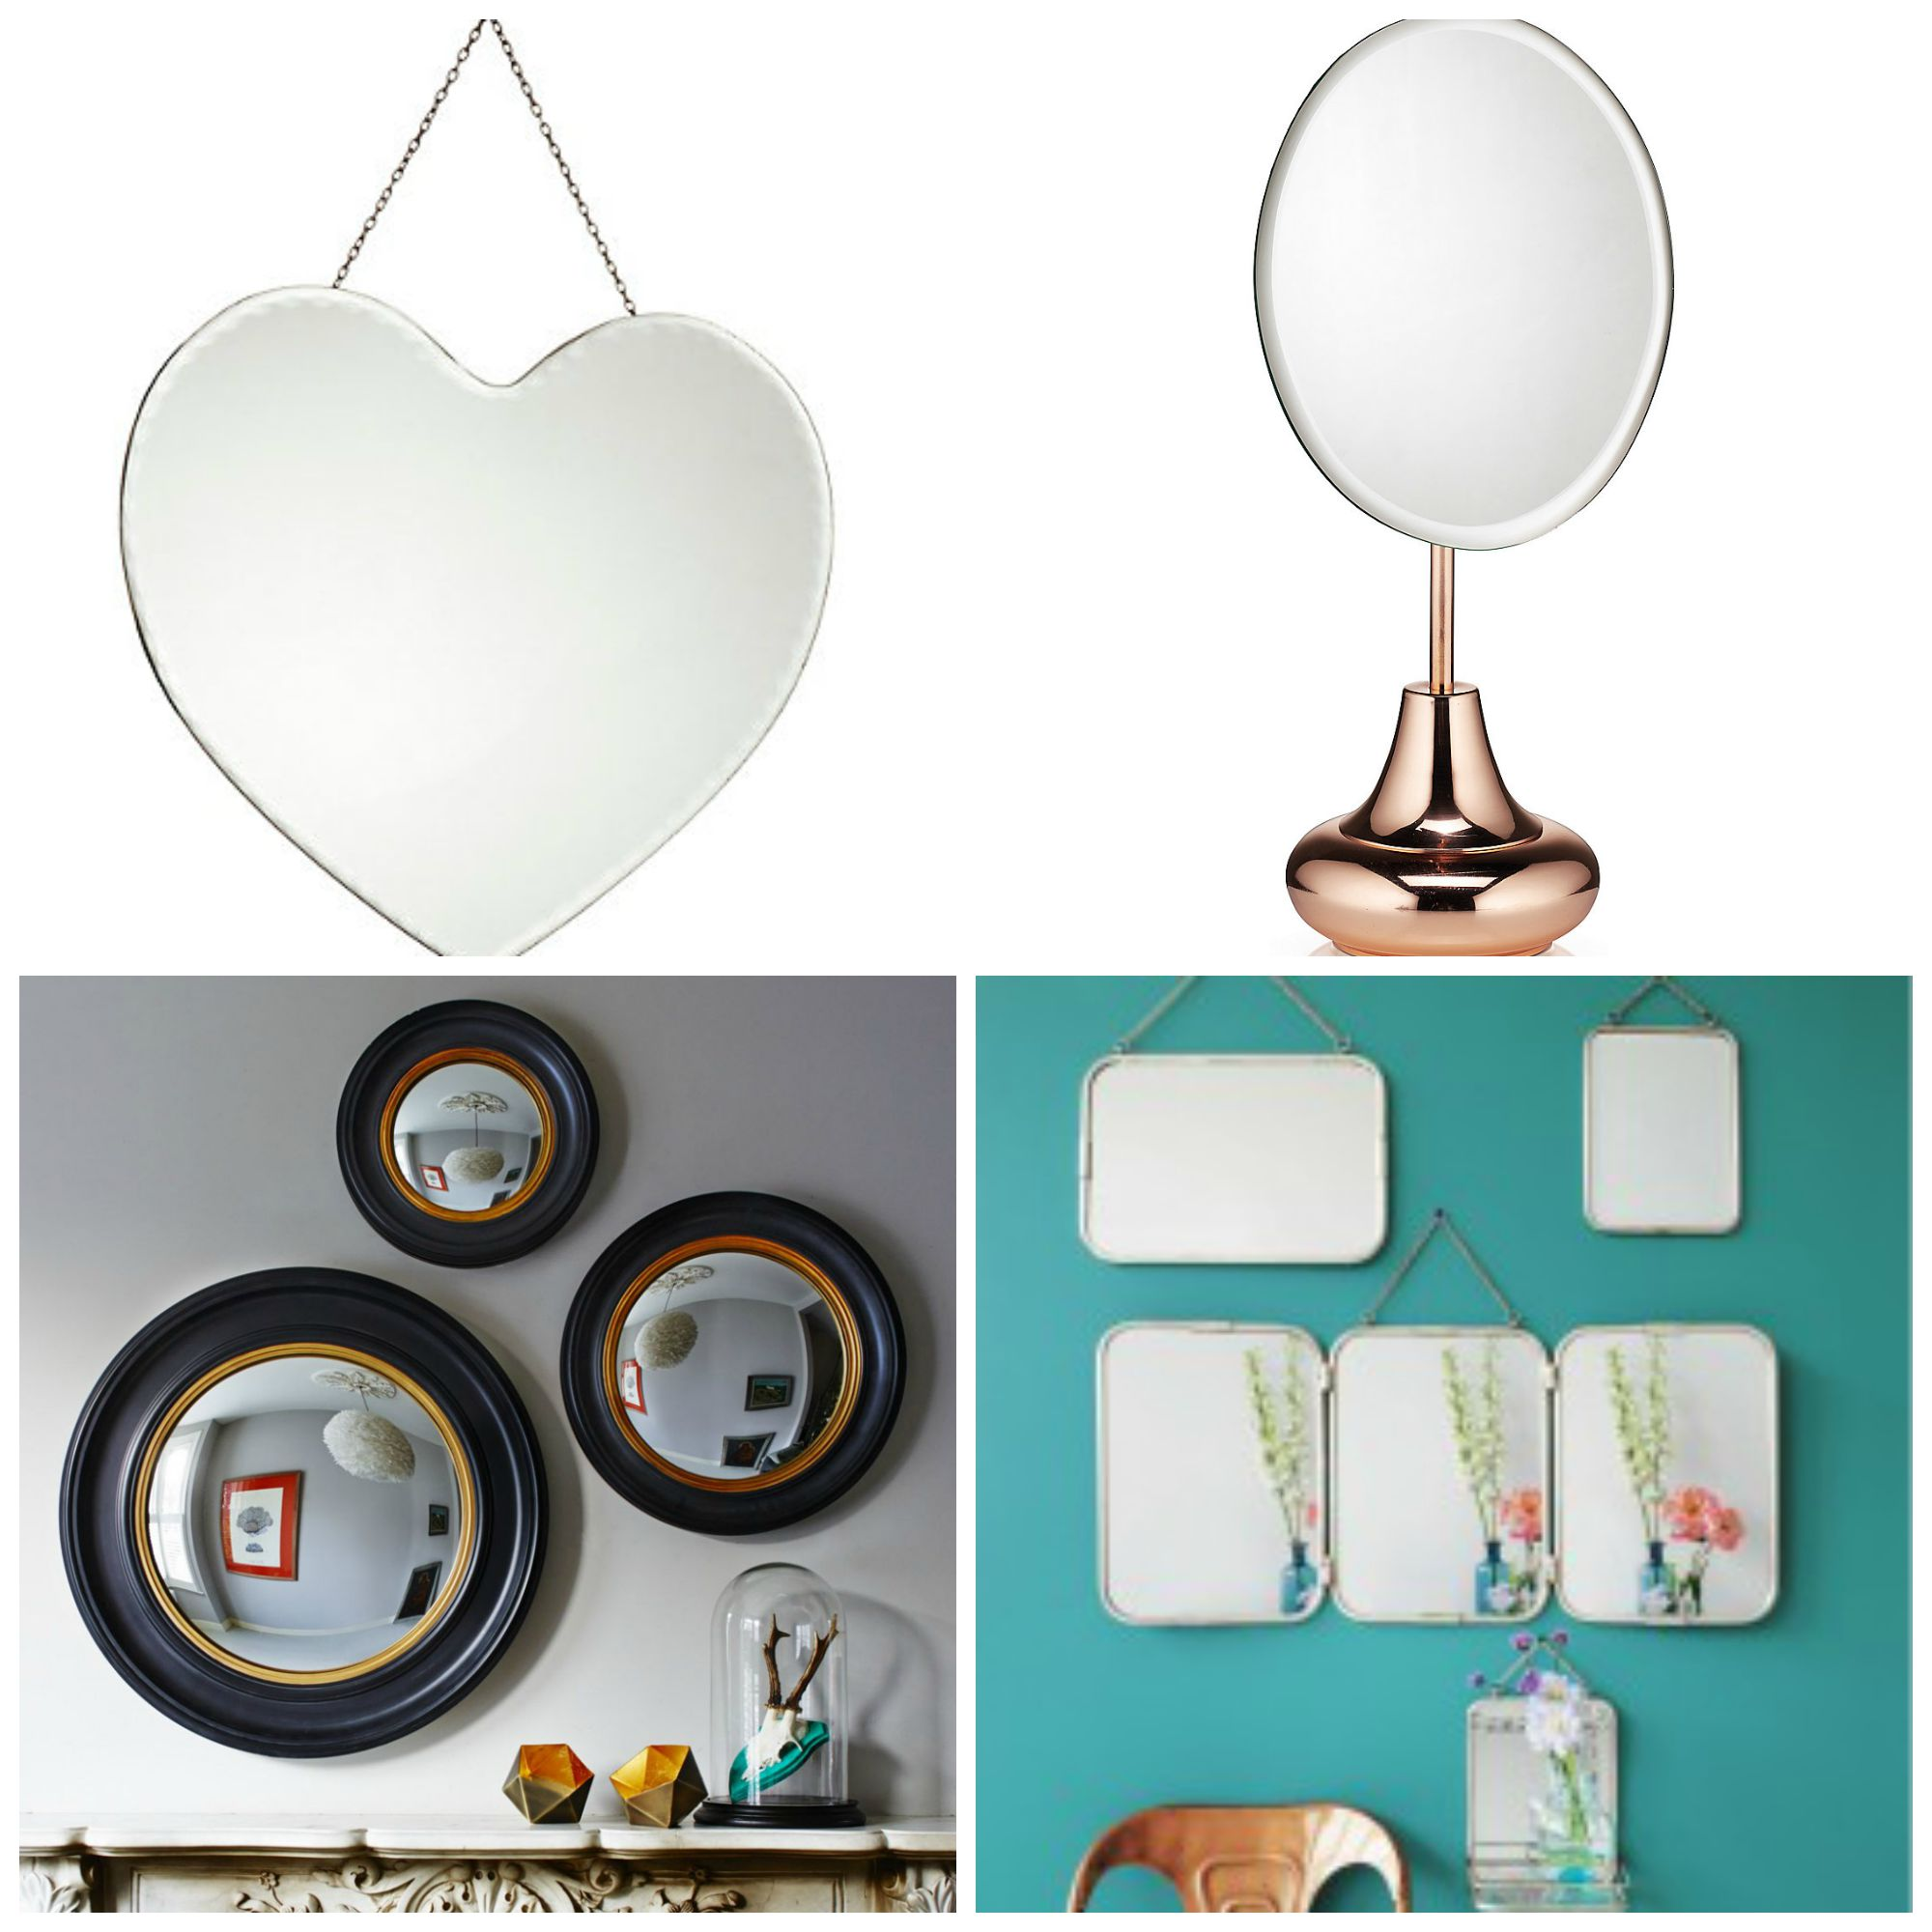 Interiors Inspiration - Bathroom Mirrors - The Spirited Puddle Jumper